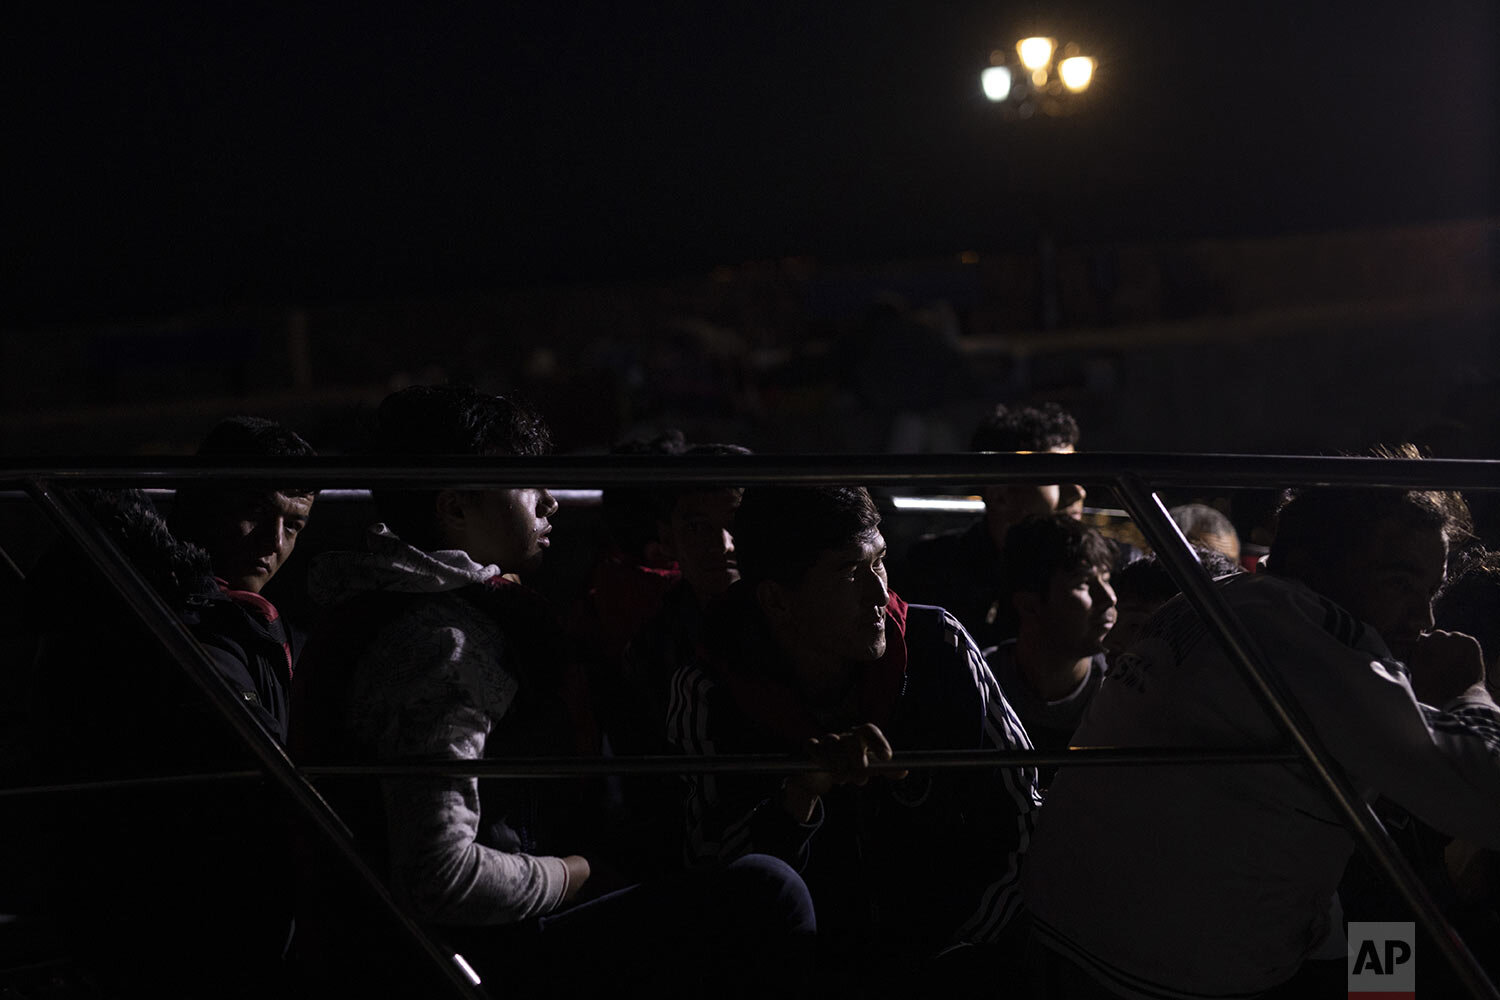 Migrants and refugees sit in a Frontex patrol boat in the tiny harbor of Skala Sikamias, on the Greek island of Lesbos, early Thursday, Oct. 3, 2019. (AP Photo/Petros Giannakouris)